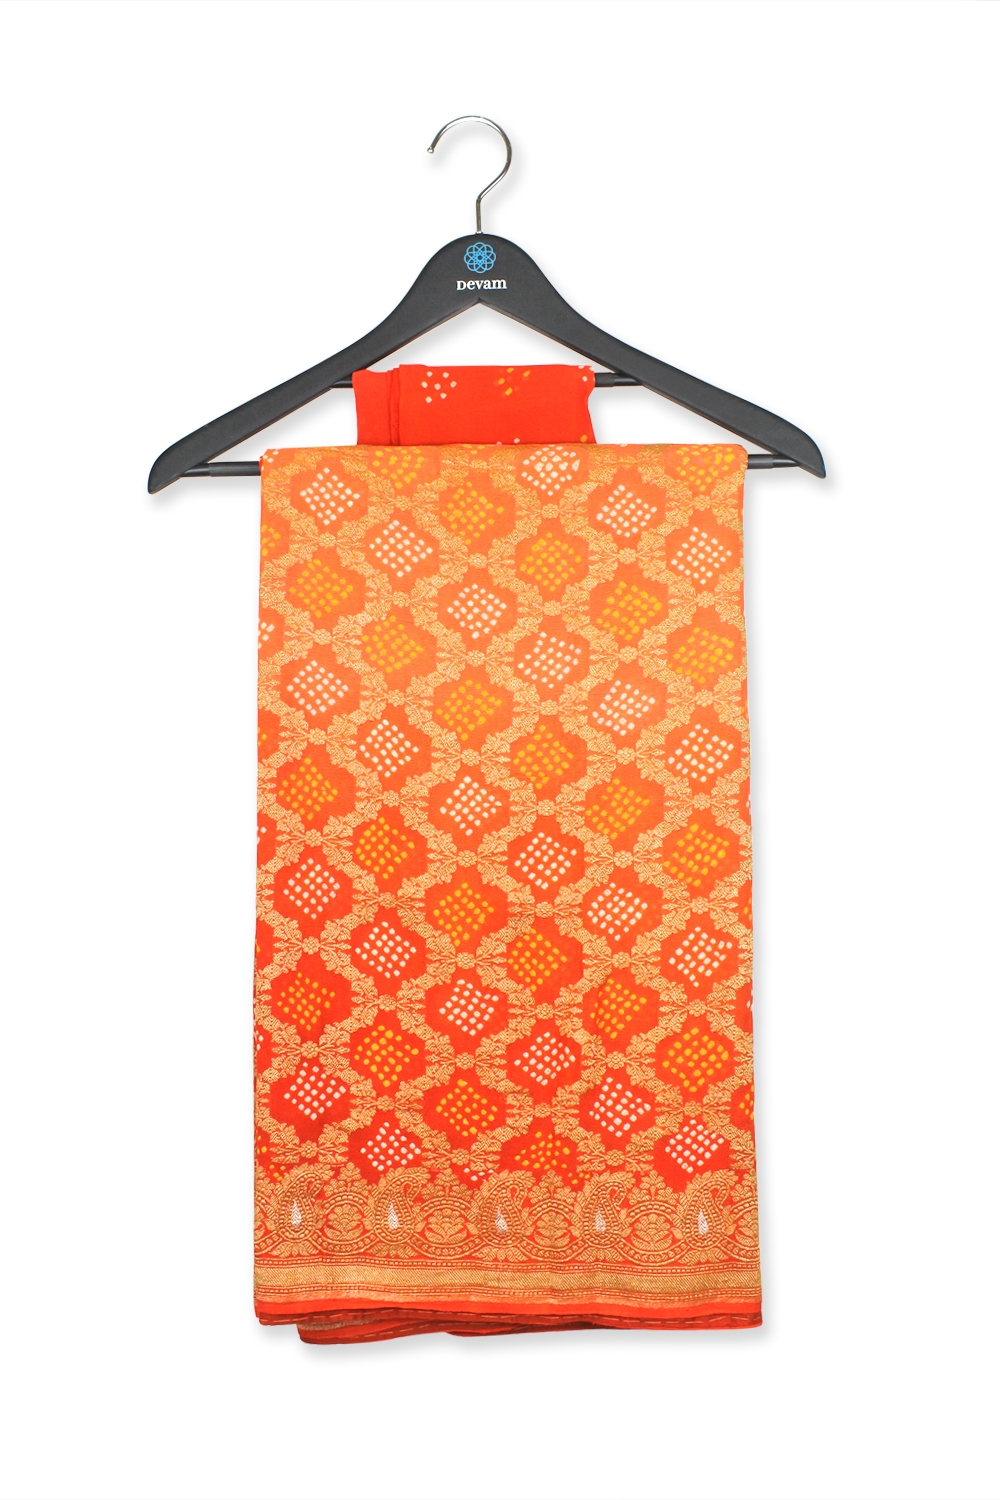 Sunset Orange Handloom Bandhej Brocade Georgette Saree